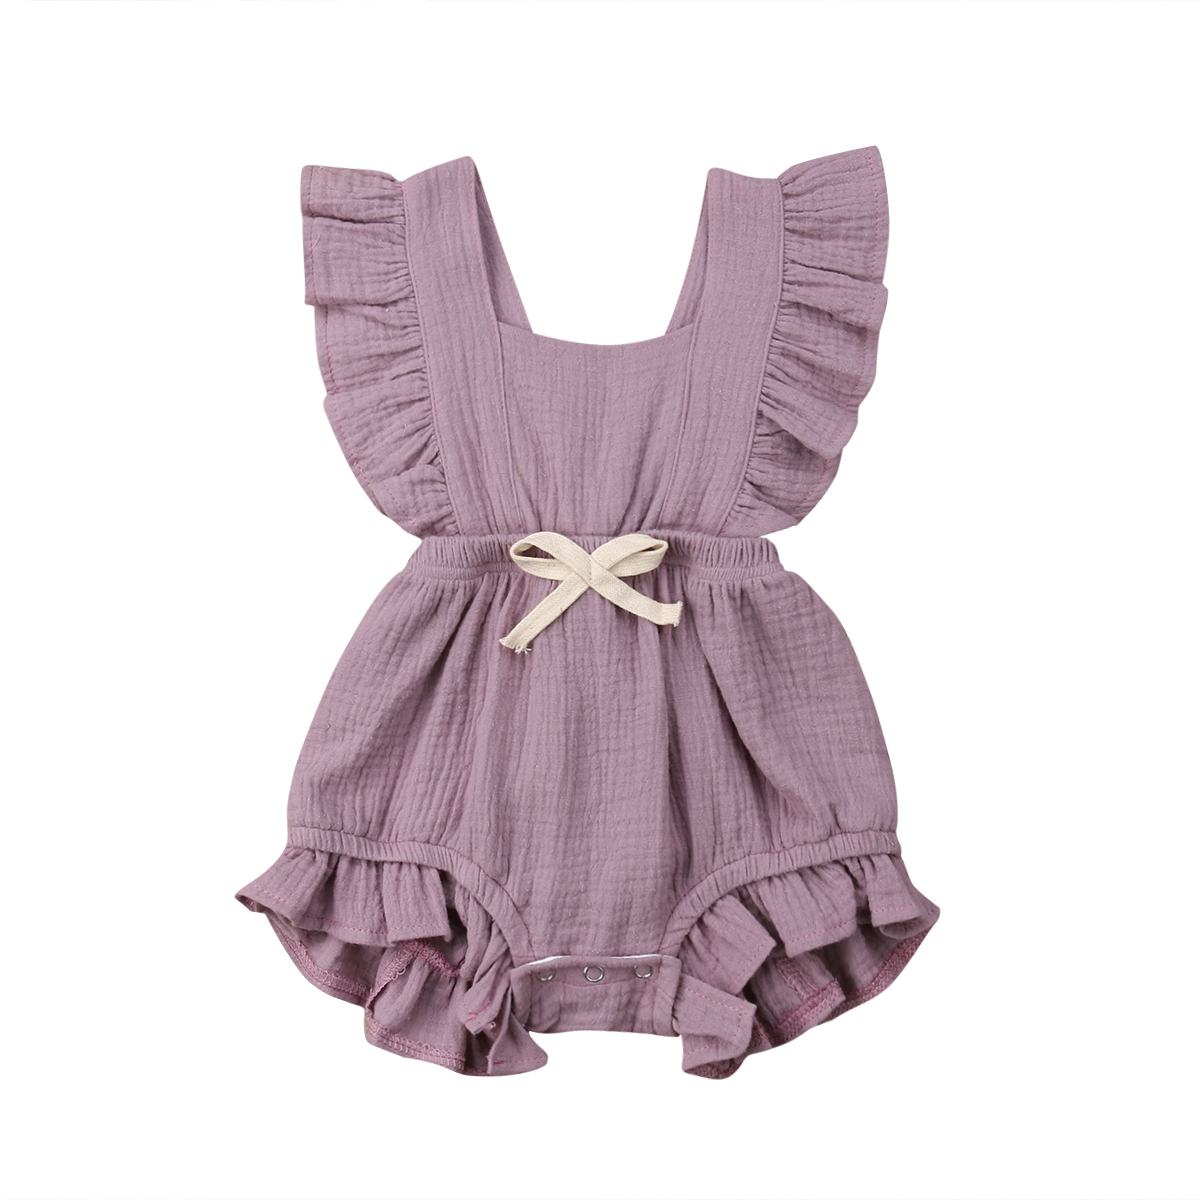 6 Color Cute Baby Girl Ruffle Solid Color Romper  Jumpsuit Outfits Sunsuit for Newborn Infant Children Clothes Kid Clothing-in Rompers from Mother & Kids on Aliexpress.com | Alibaba Group